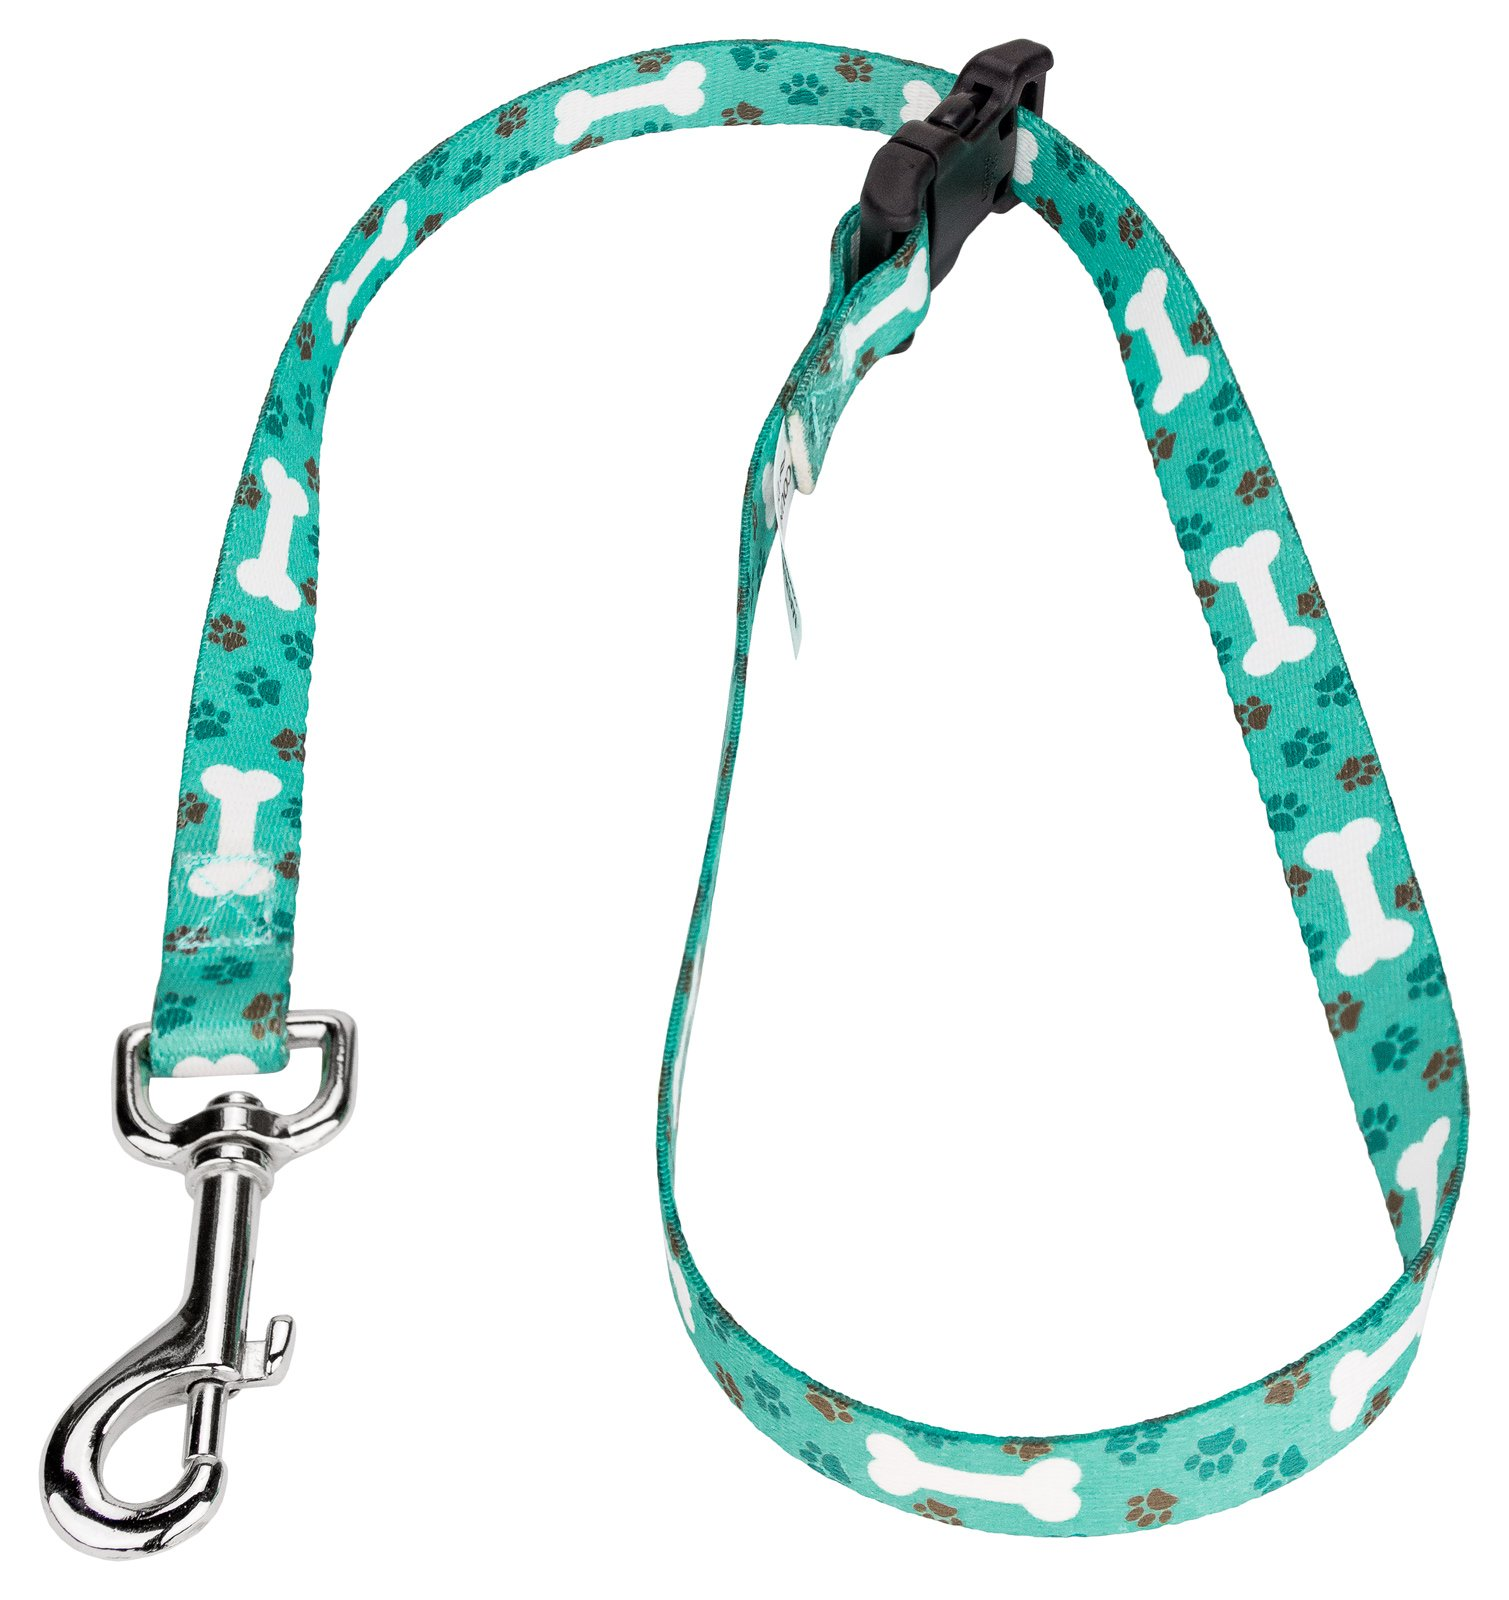 12 - Country Brook Petz 5/8 Inch Oh My Dog Choker Style Grooming Loop by Country Brook Petz